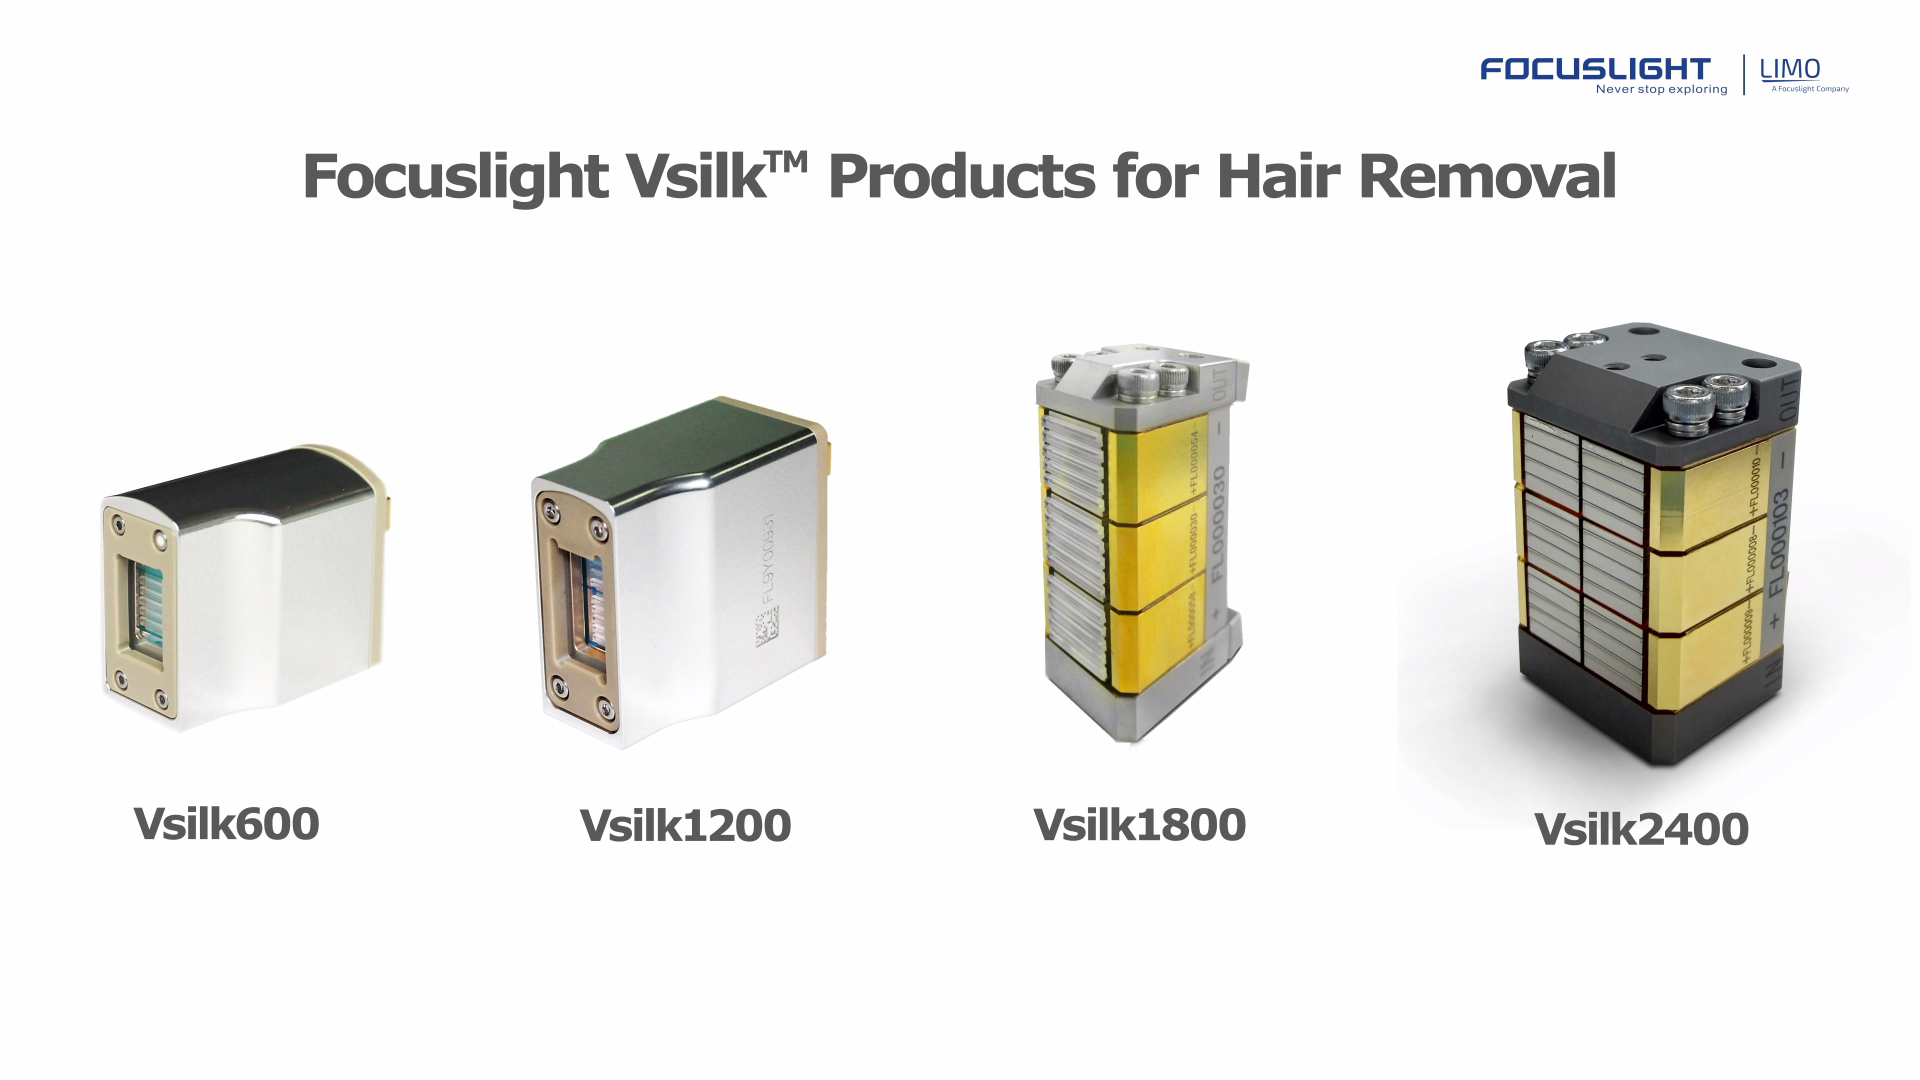 Focuslight's New Vsilk